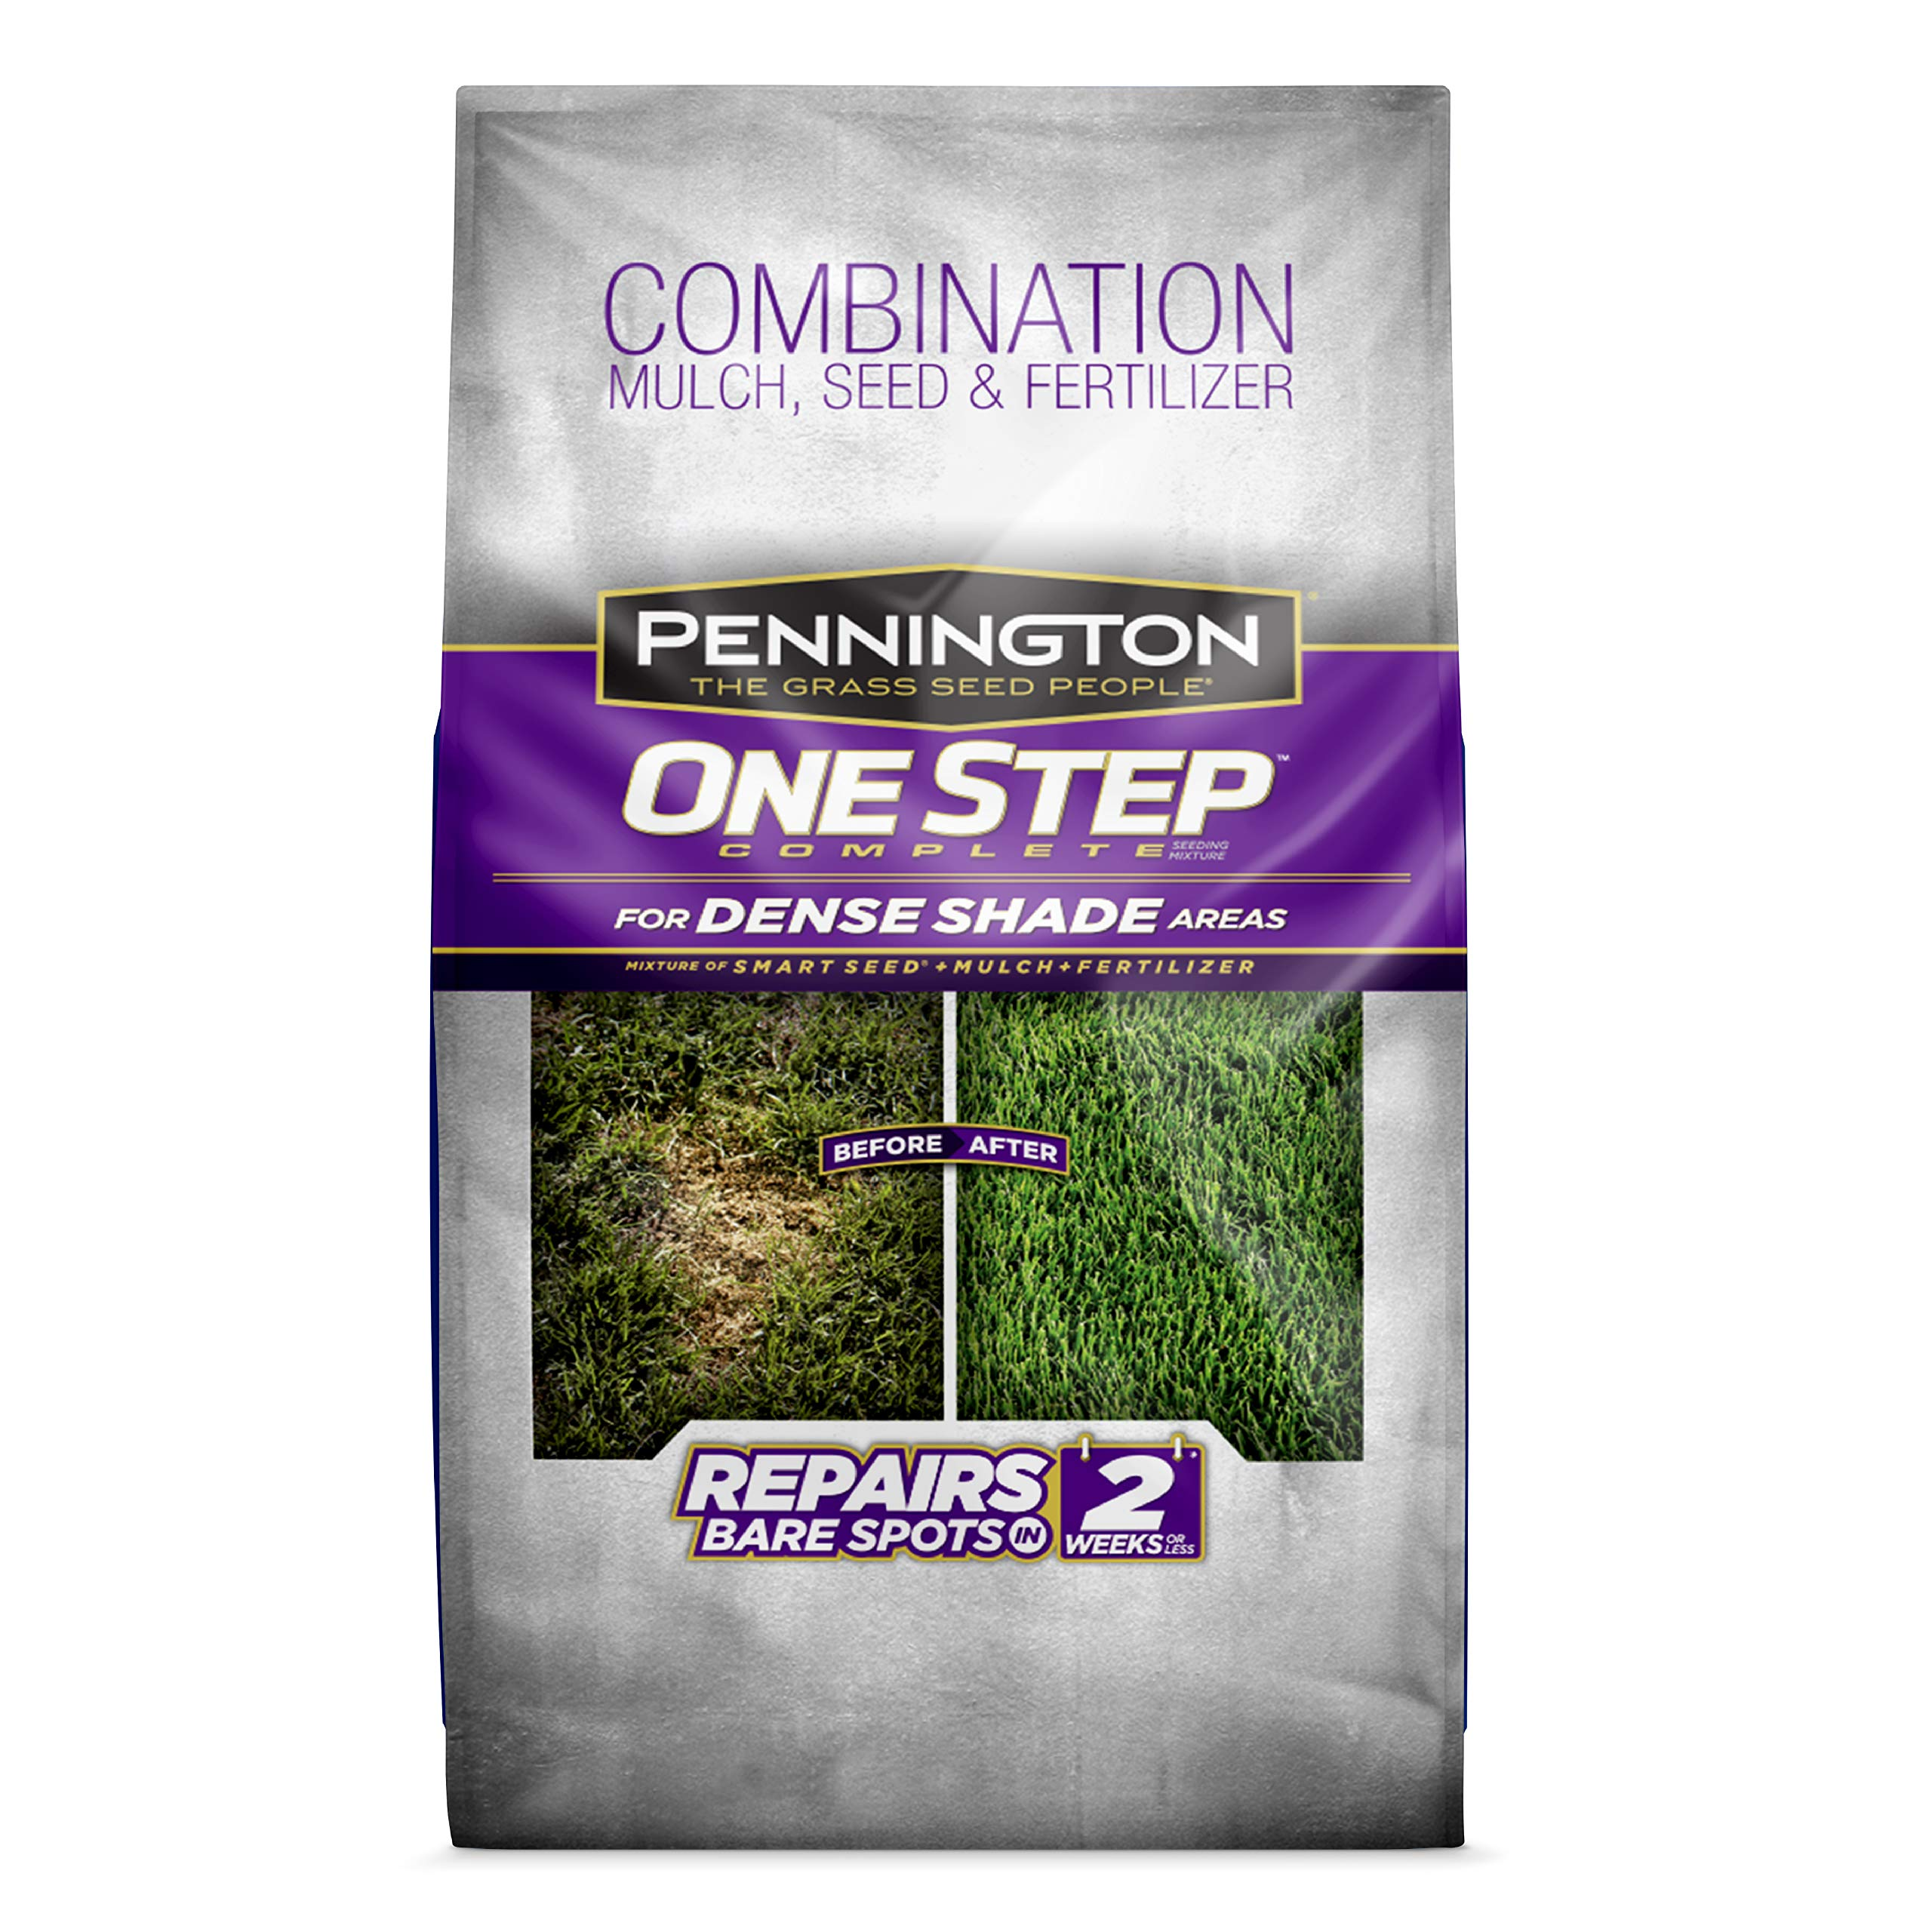 Pennington 100520284 One Step Complete Bare Spot Repair Grass Seed Mix for for Dense Shade Areas, 8.3 lbs by Pennington